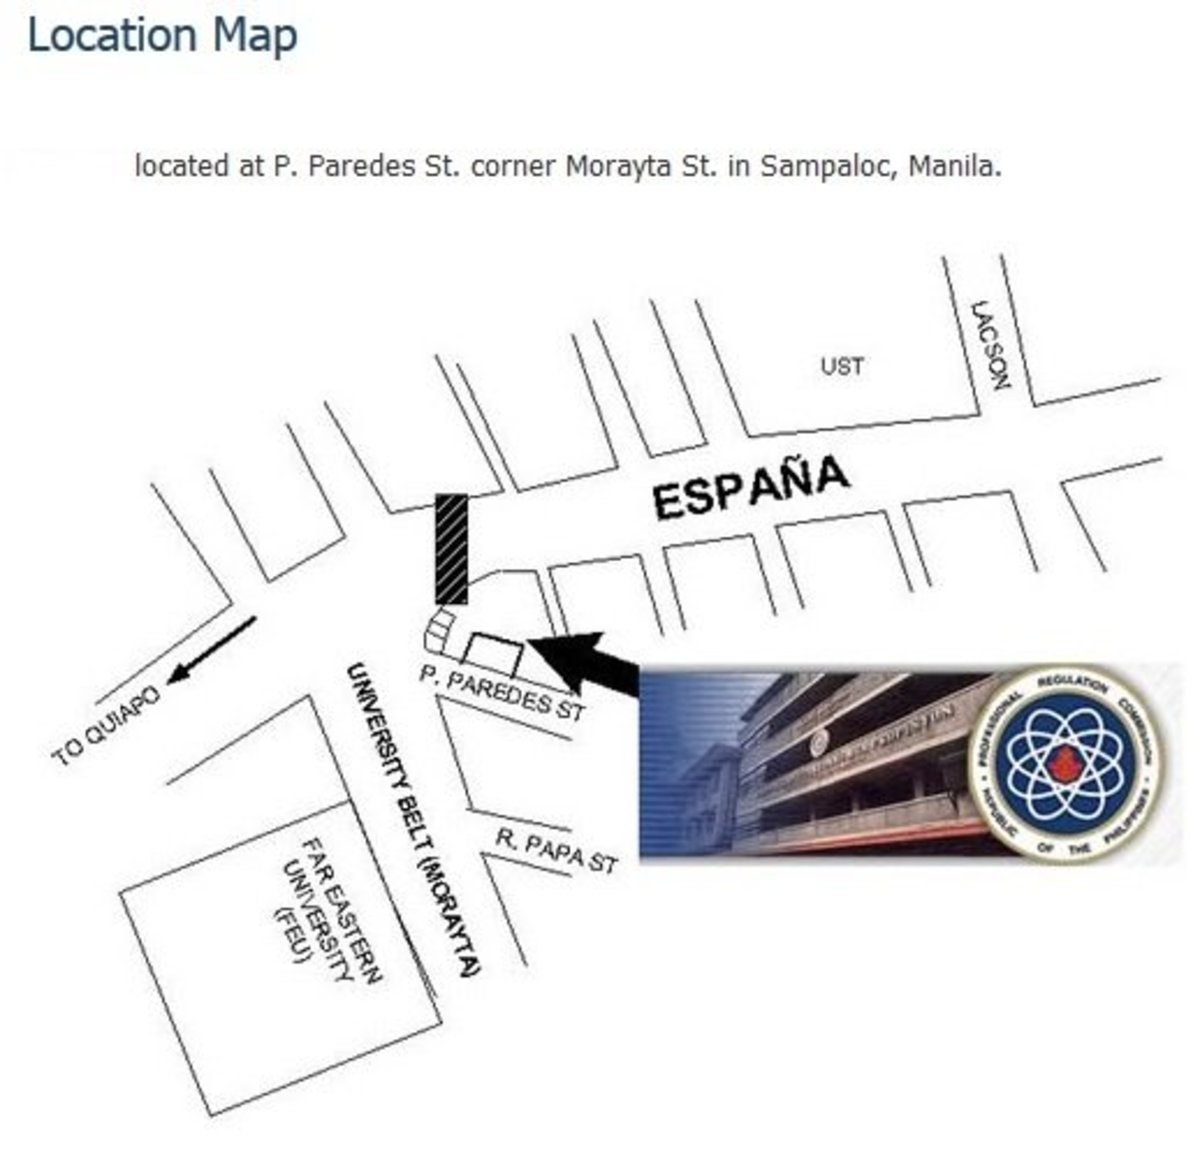 Where the PRC office is located.